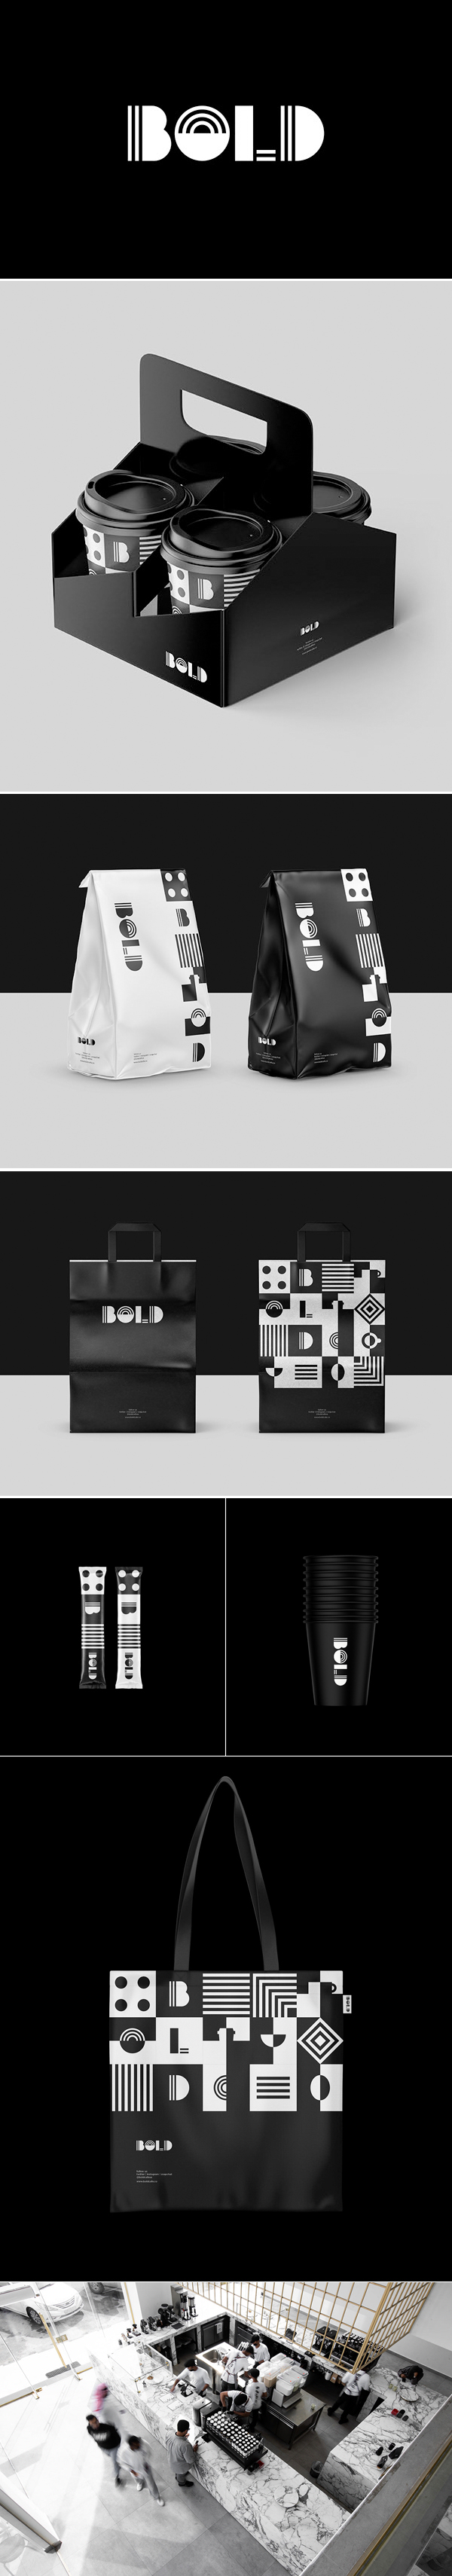 Bold Cafe Branding by Muhammad Almousa